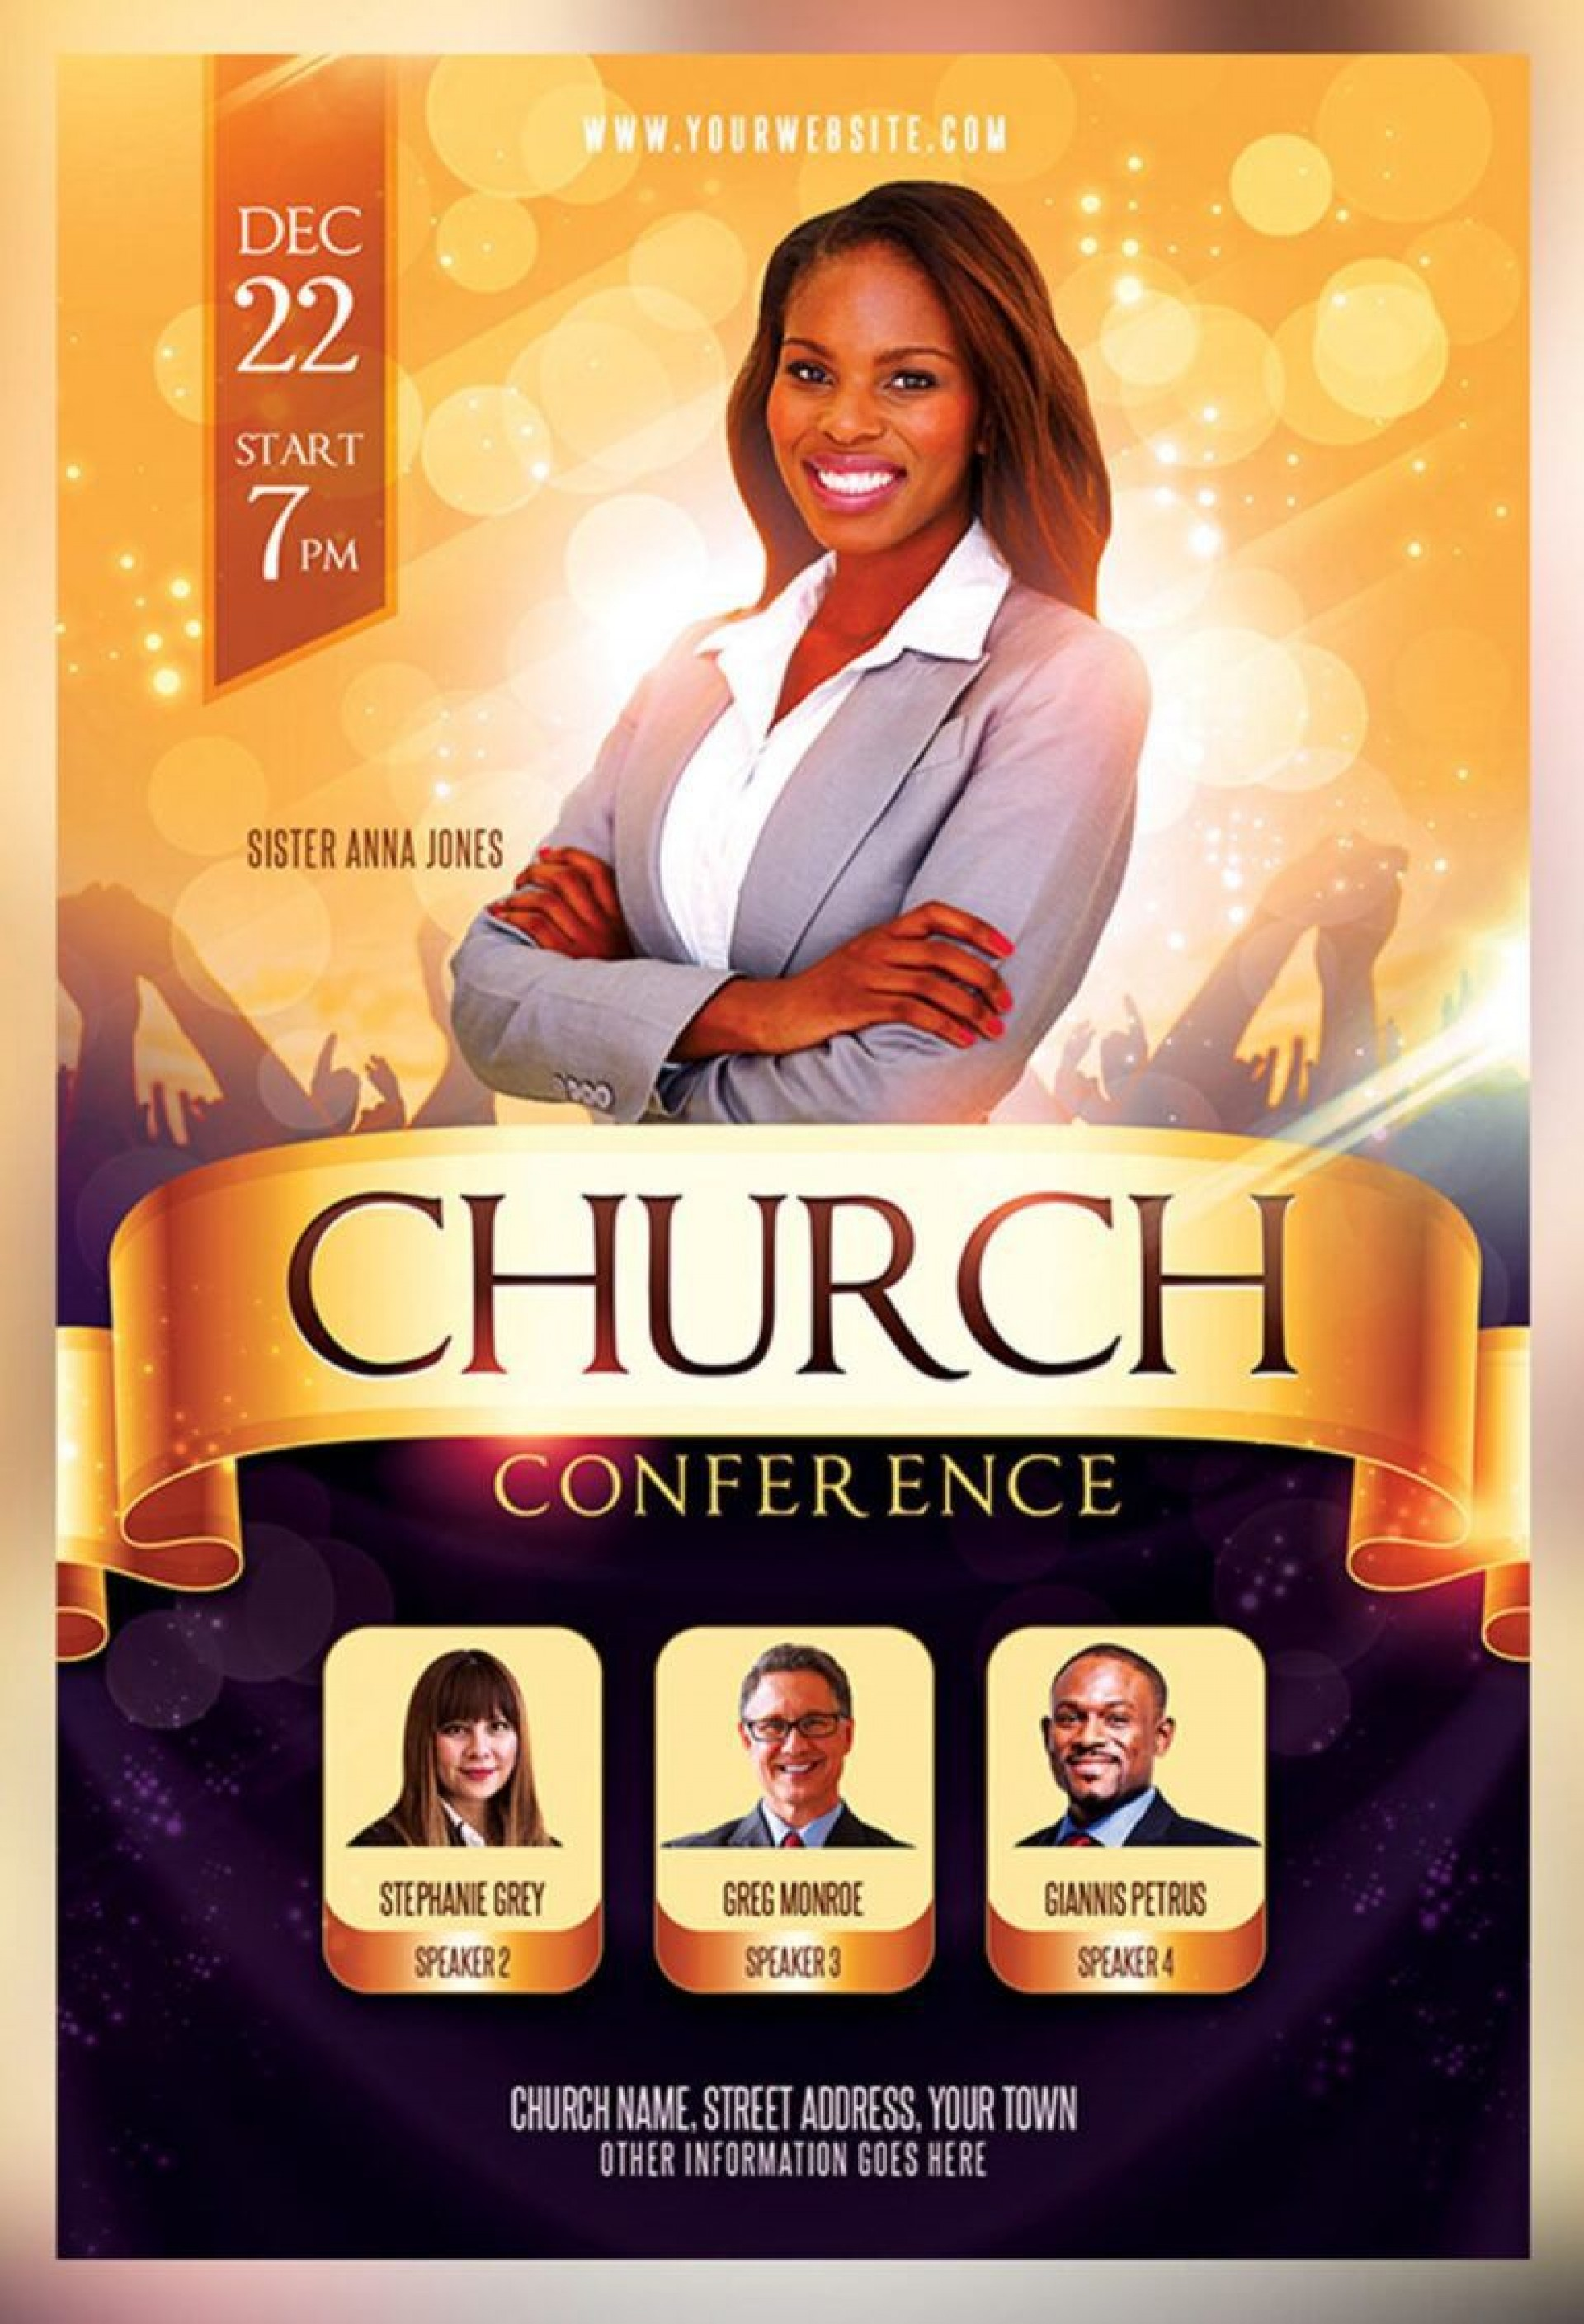 007 Shocking Church Flyer Template Free High Def  Easter Anniversary Conference Psd1920